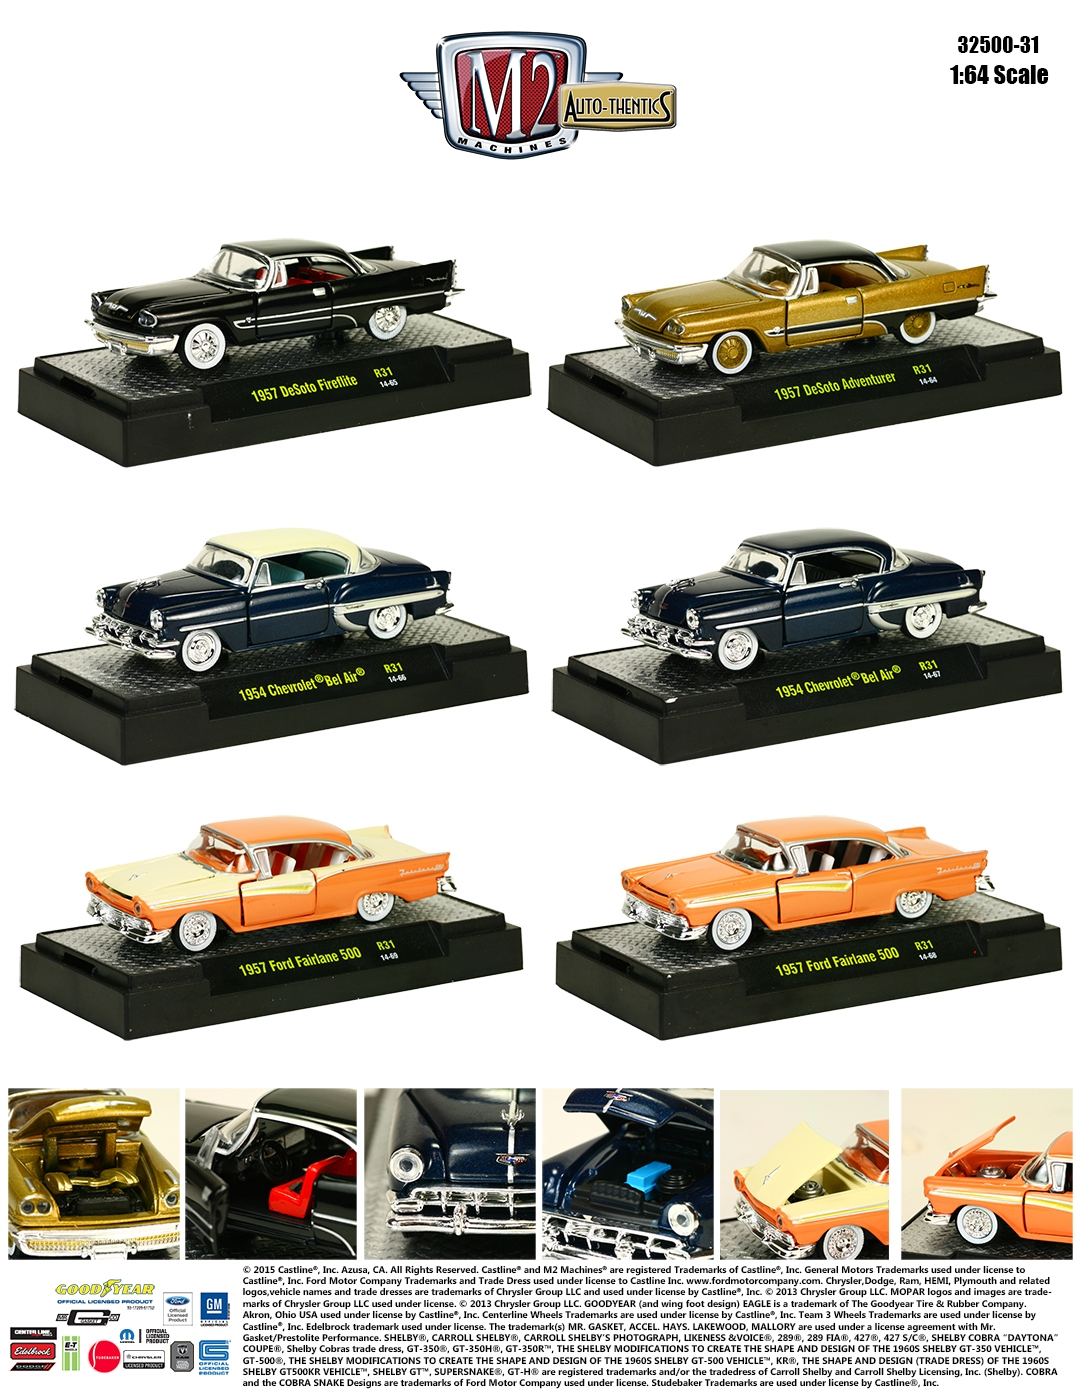 1:64 American Classics Sneak Peek: M2 Auto-Thentics Series 31